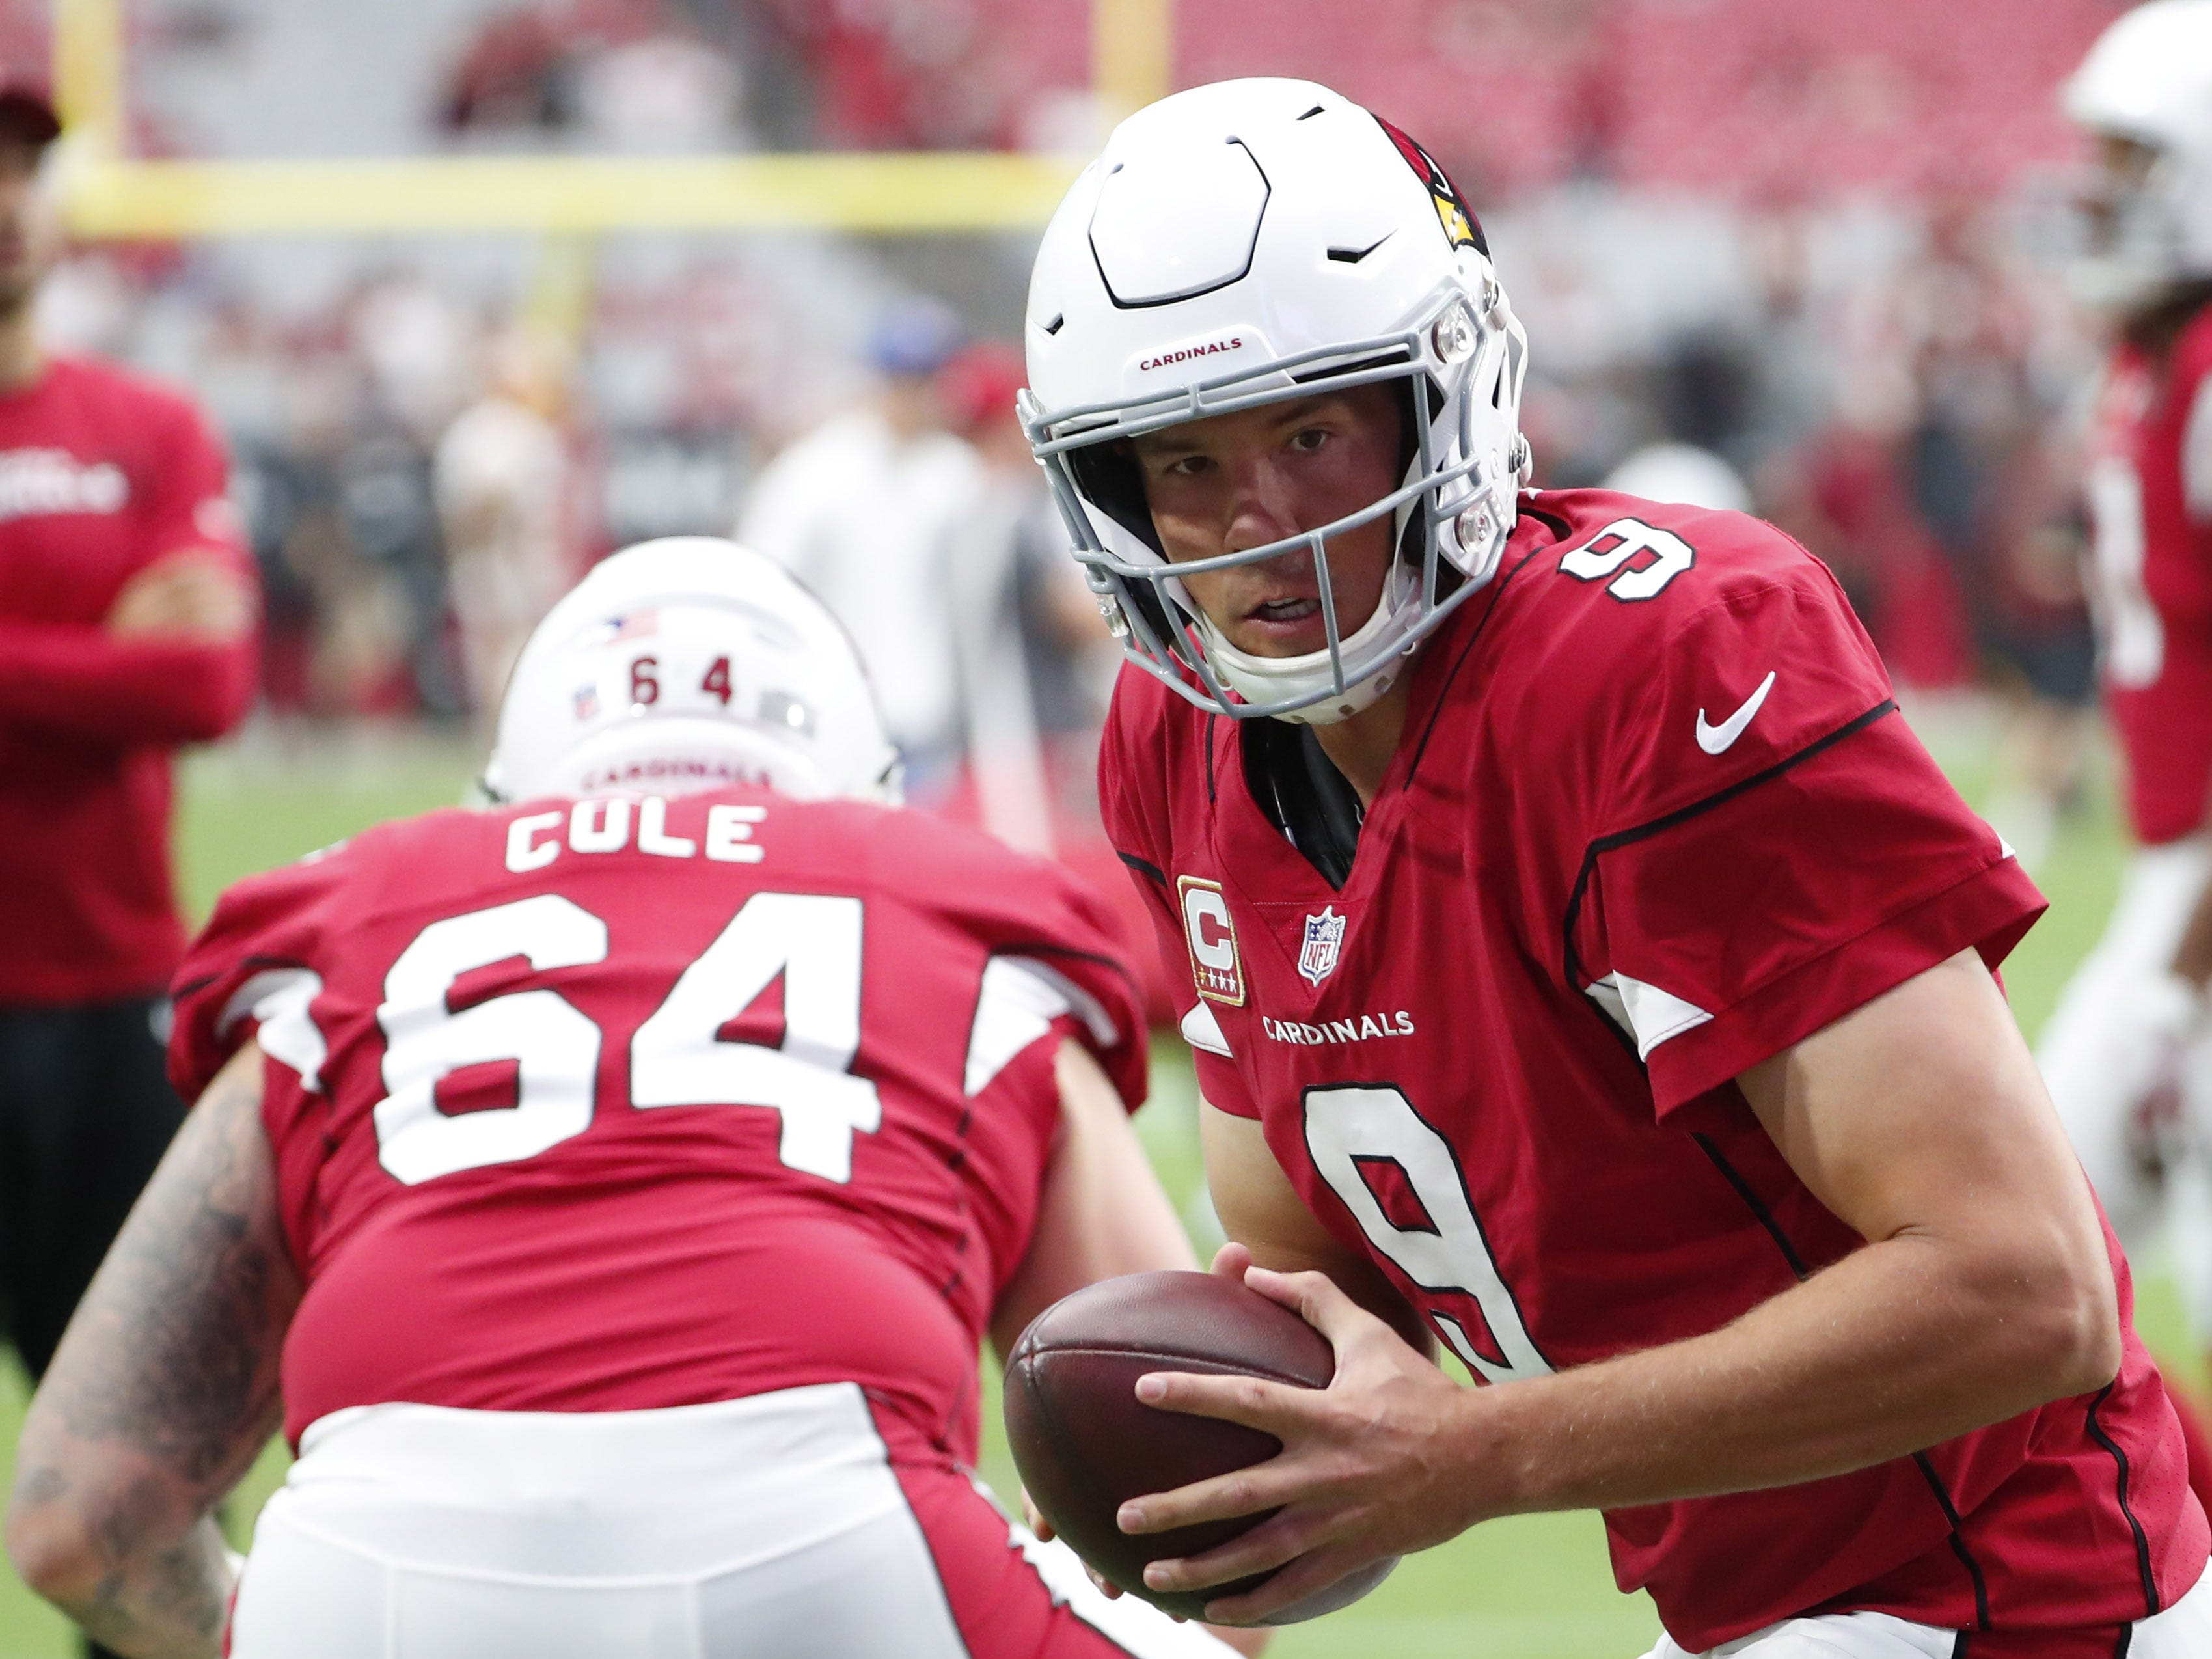 Arizona Cardinals quarterback Sam Bradford (9) warms up before playing against the Washington Redskins at State Farm Stadium in Glendale, Ariz. September 9. 2018.